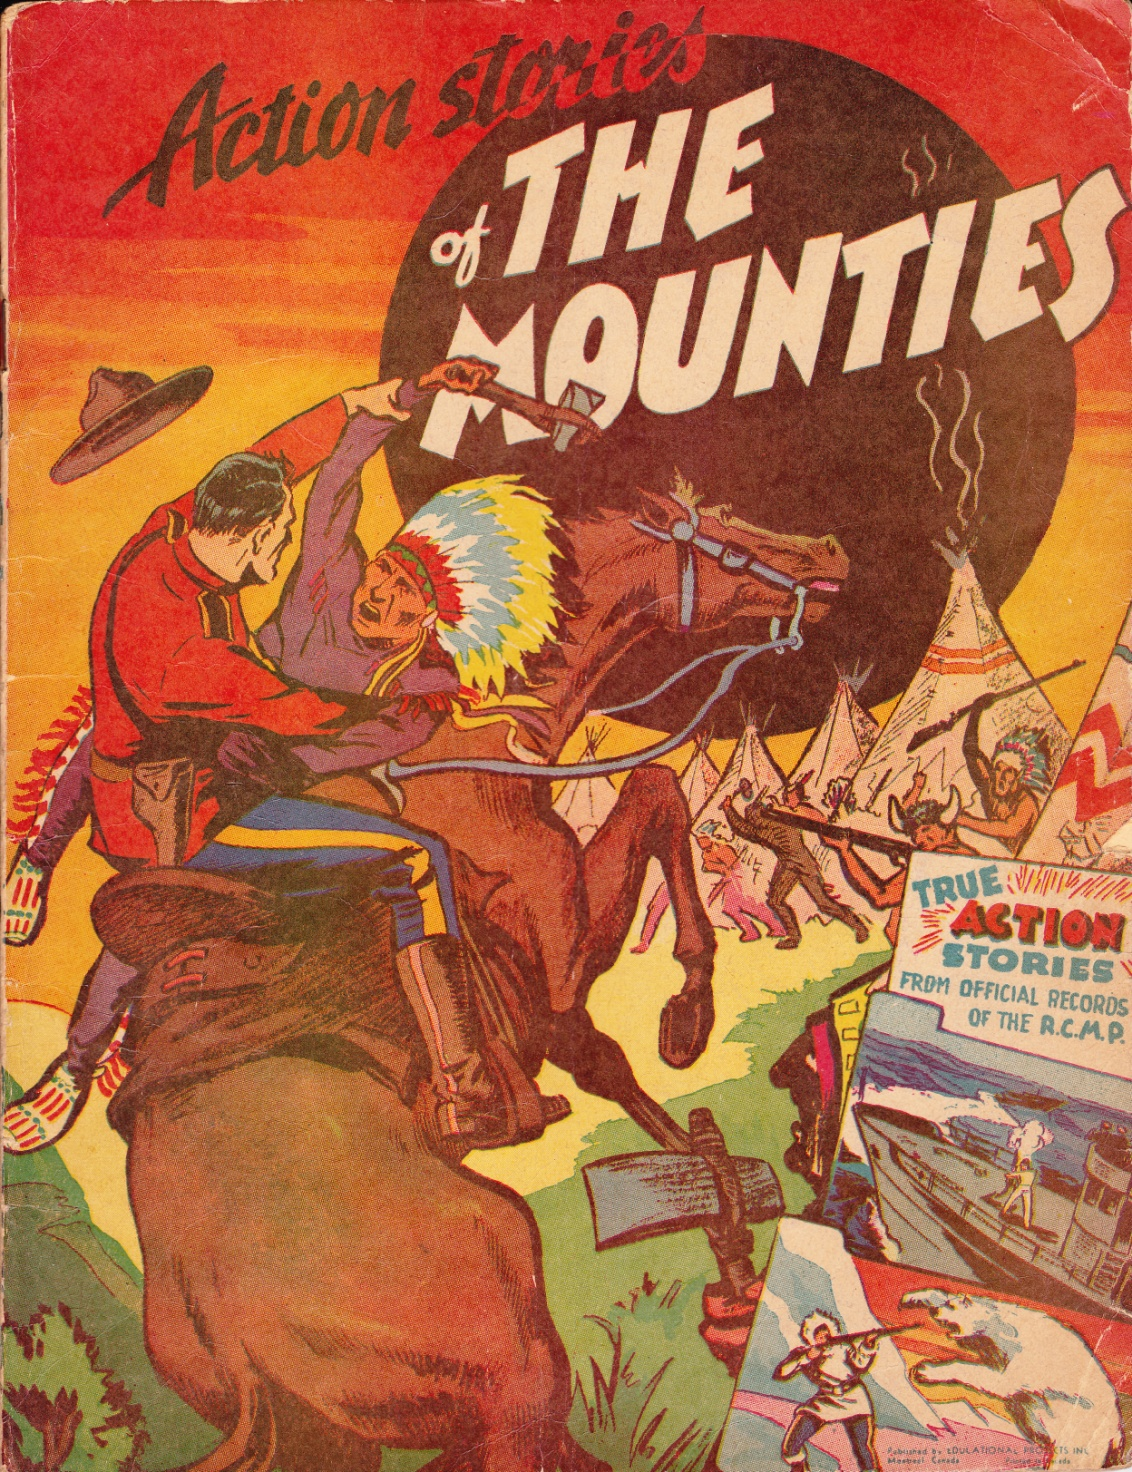 C:\Users\Robert\Documents\CARTOONING ILLUSTRATION ANIMATION\IMAGE BY CARTOONIST\R\RAE George m. Action Stories of the Mounties, f.c..jpg